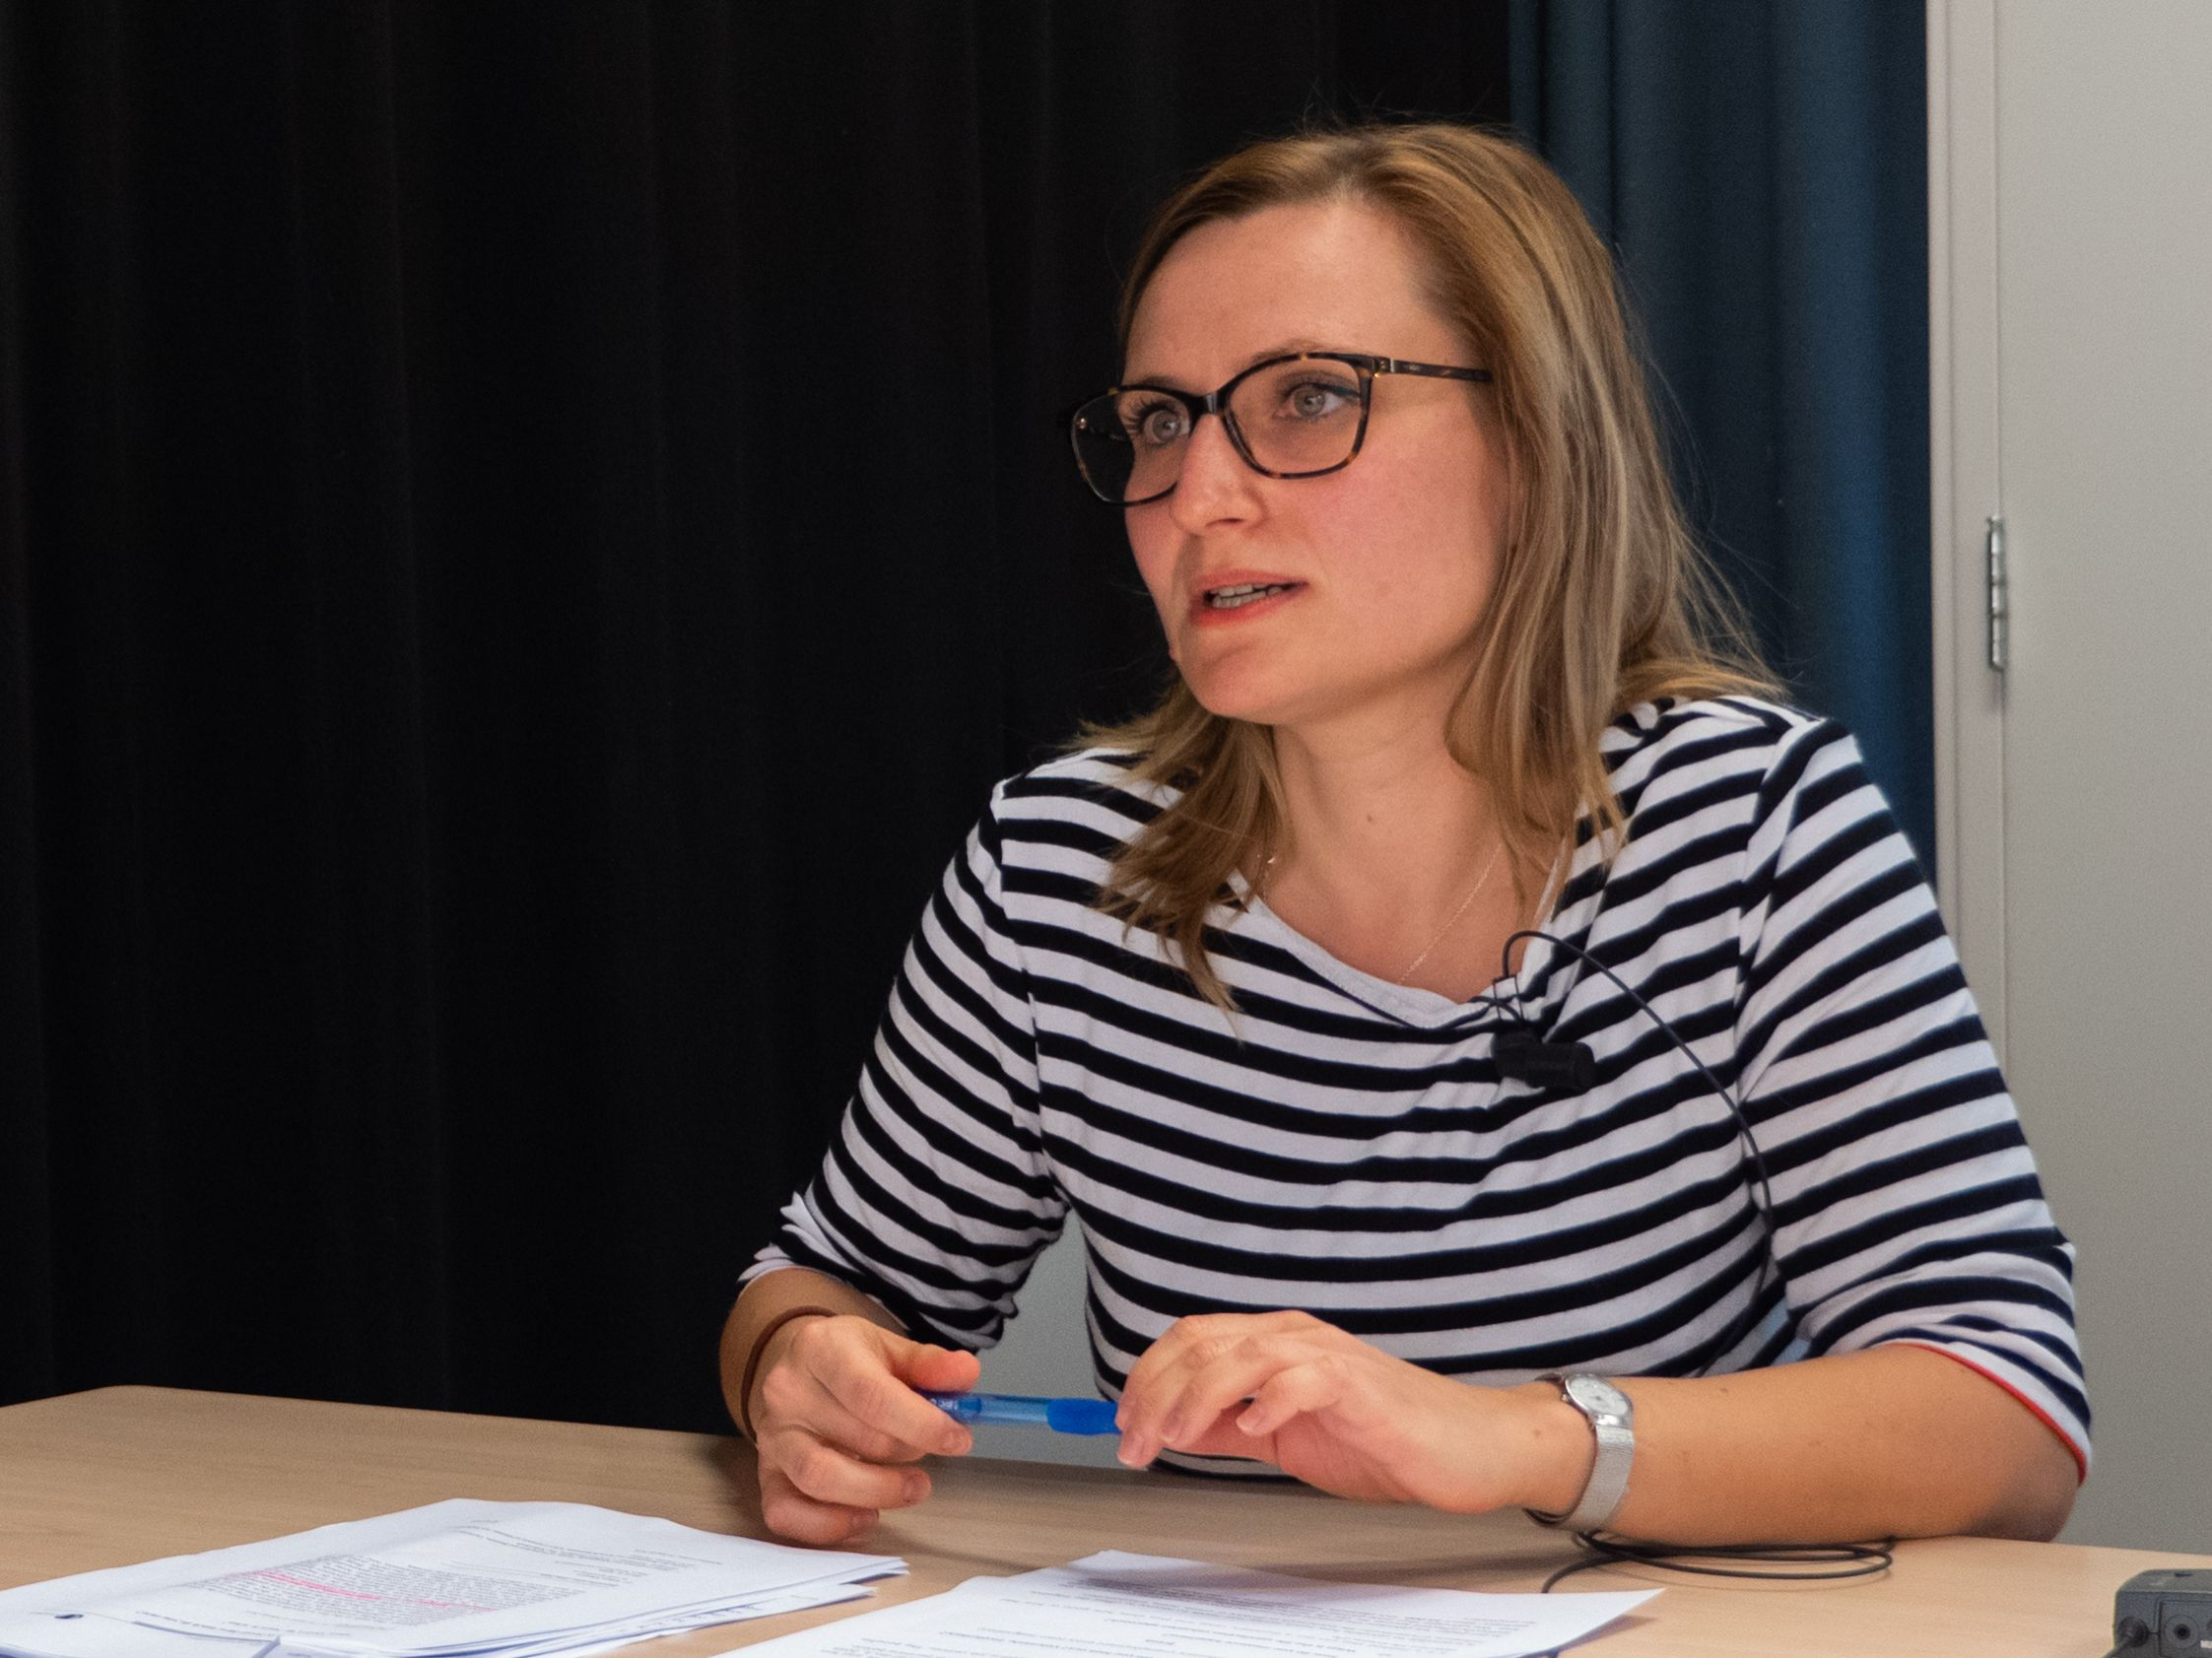 Milena Nikolva is assistant professor at the Faculty of Economics and Business of the University of Groningen